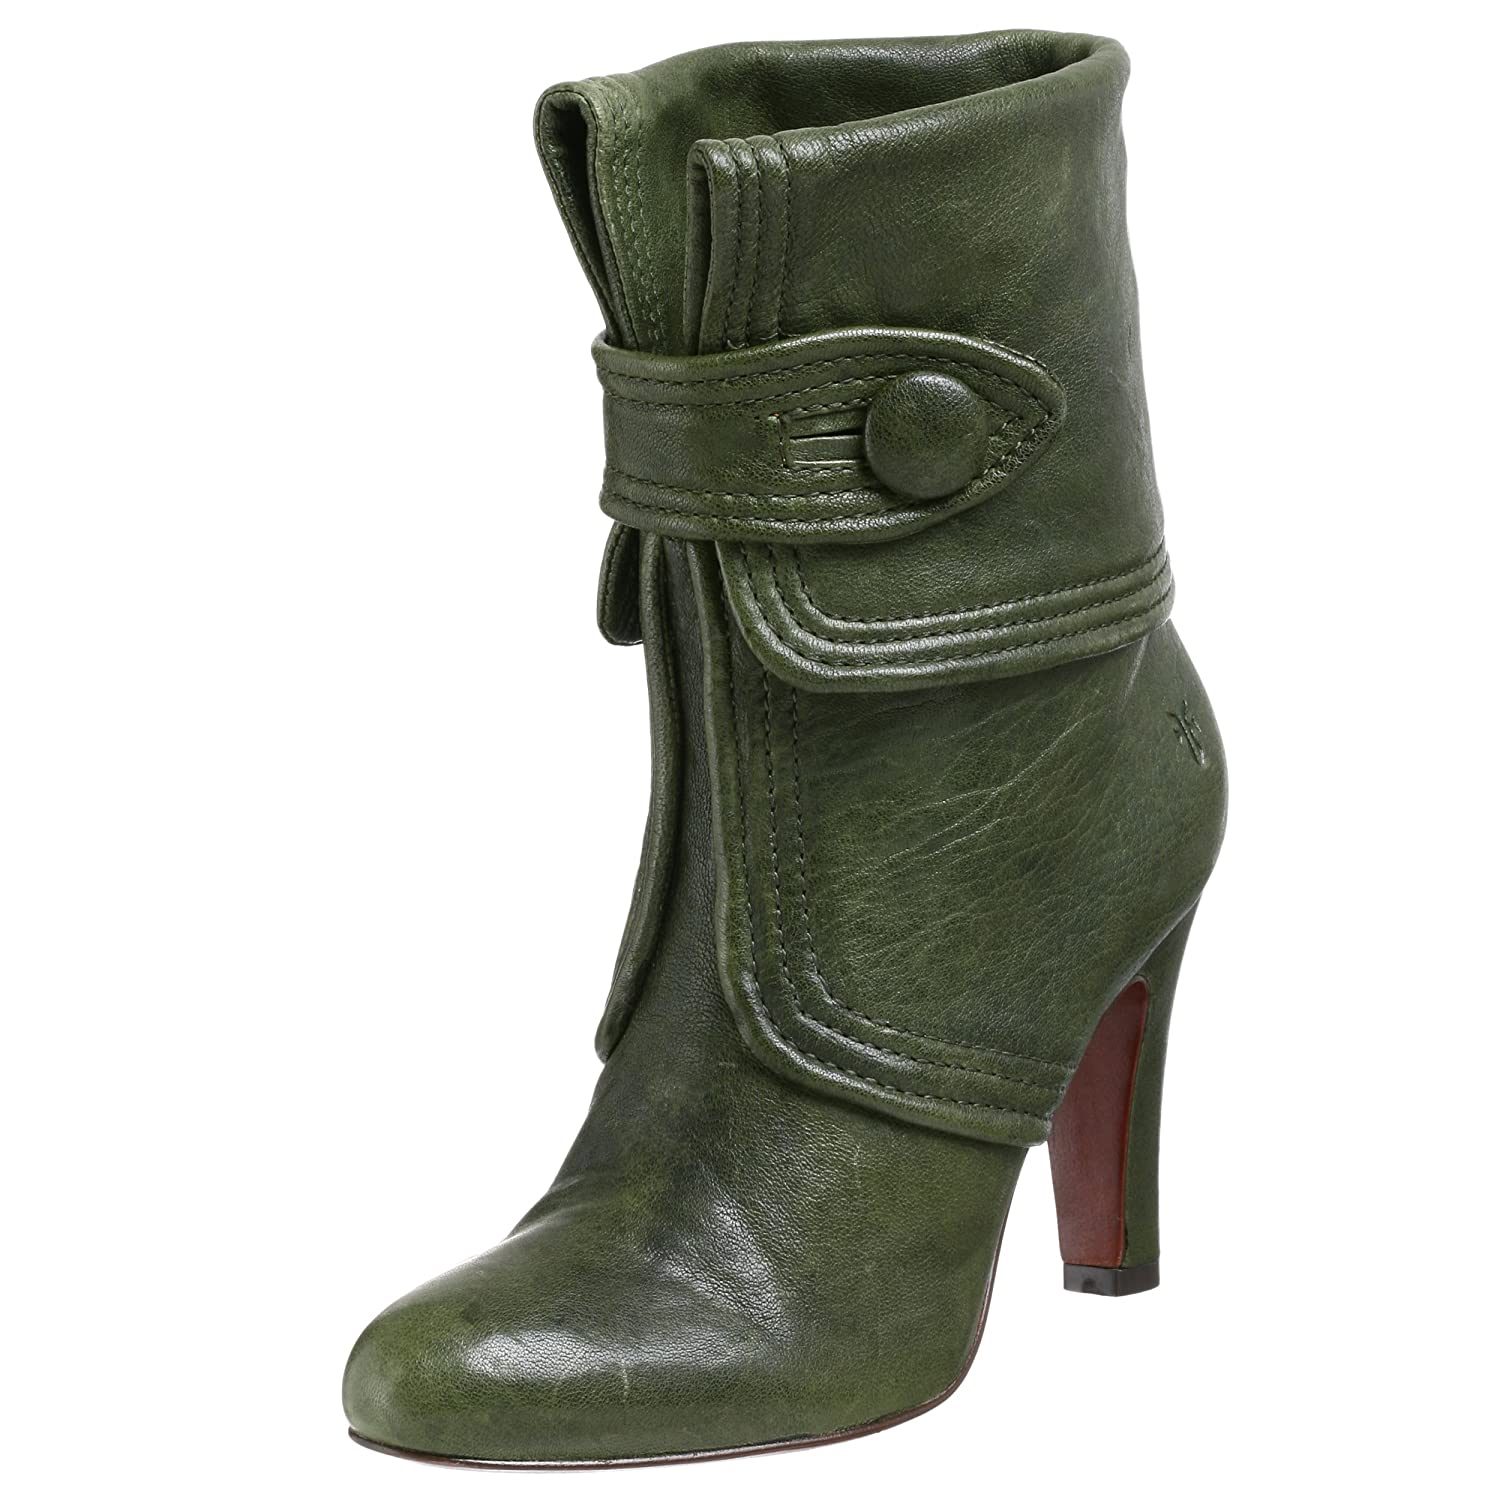 FRYE Ava Button Bootie - Free Overnight Shipping & Return Shipping: Endless.com :  ankle boot ladylike fold over cuff heels